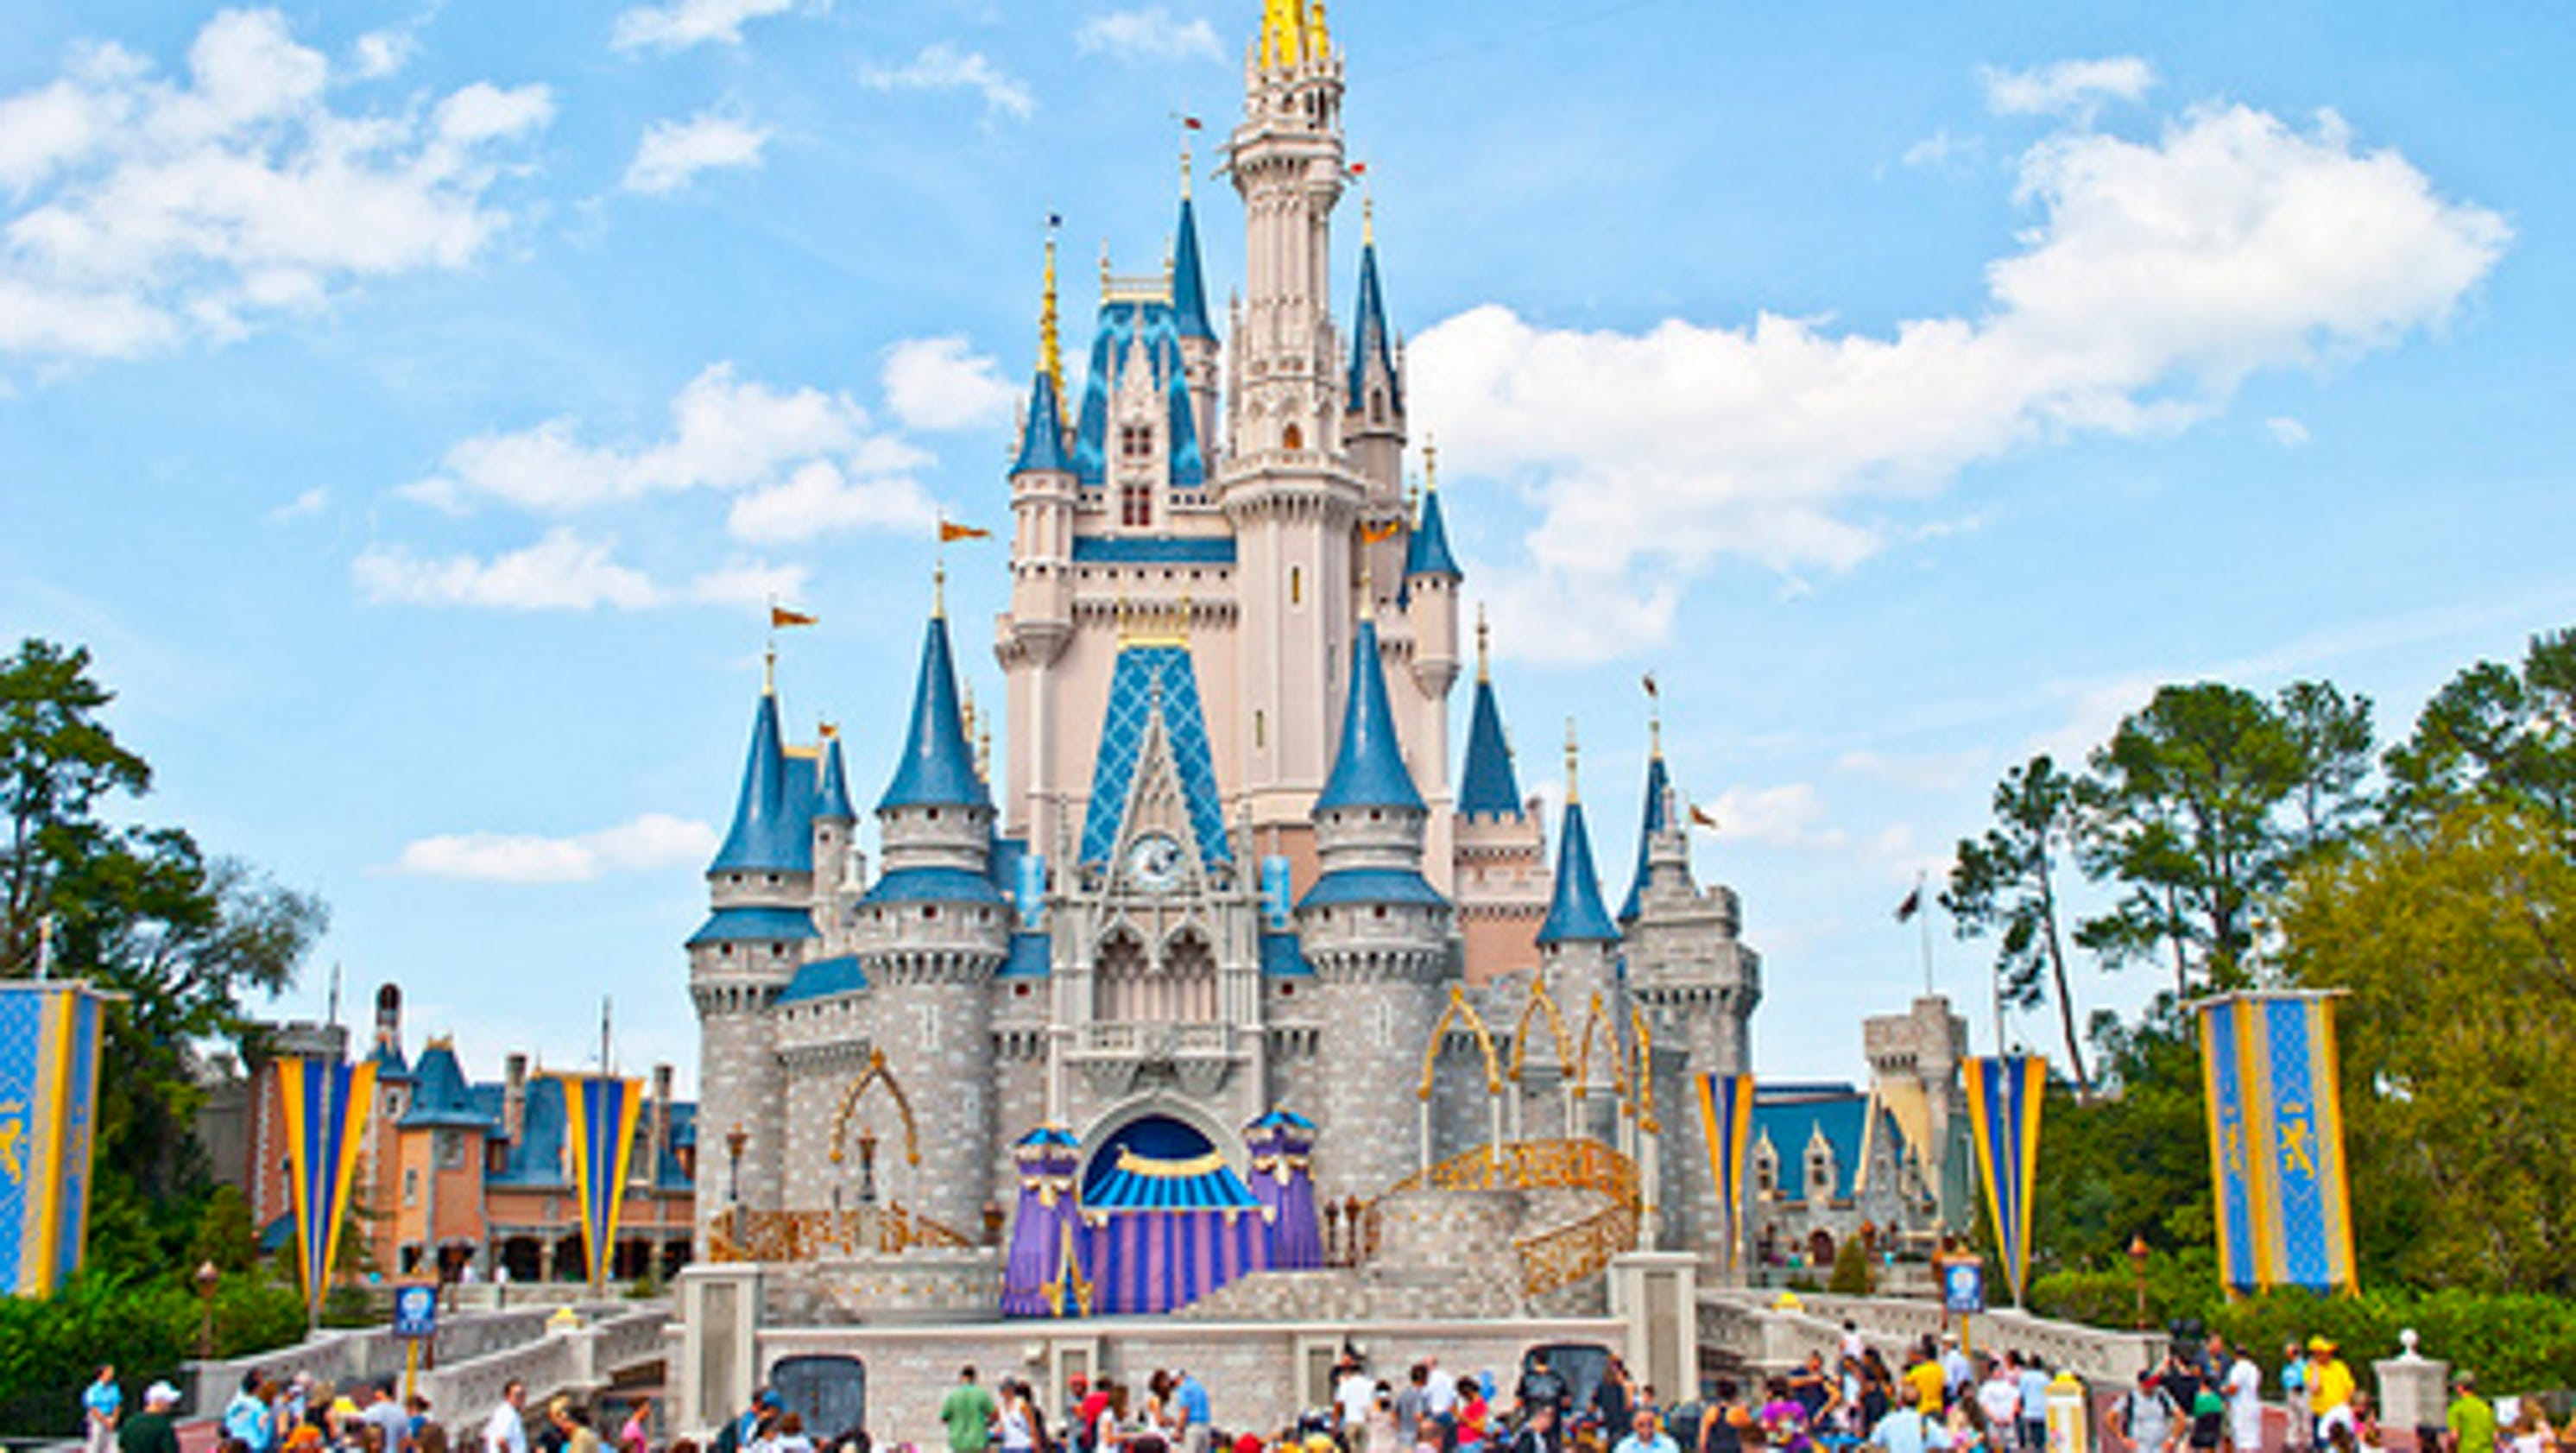 Disney World discounts: the basics. Some general things to know about Disney World discounts: Disney's